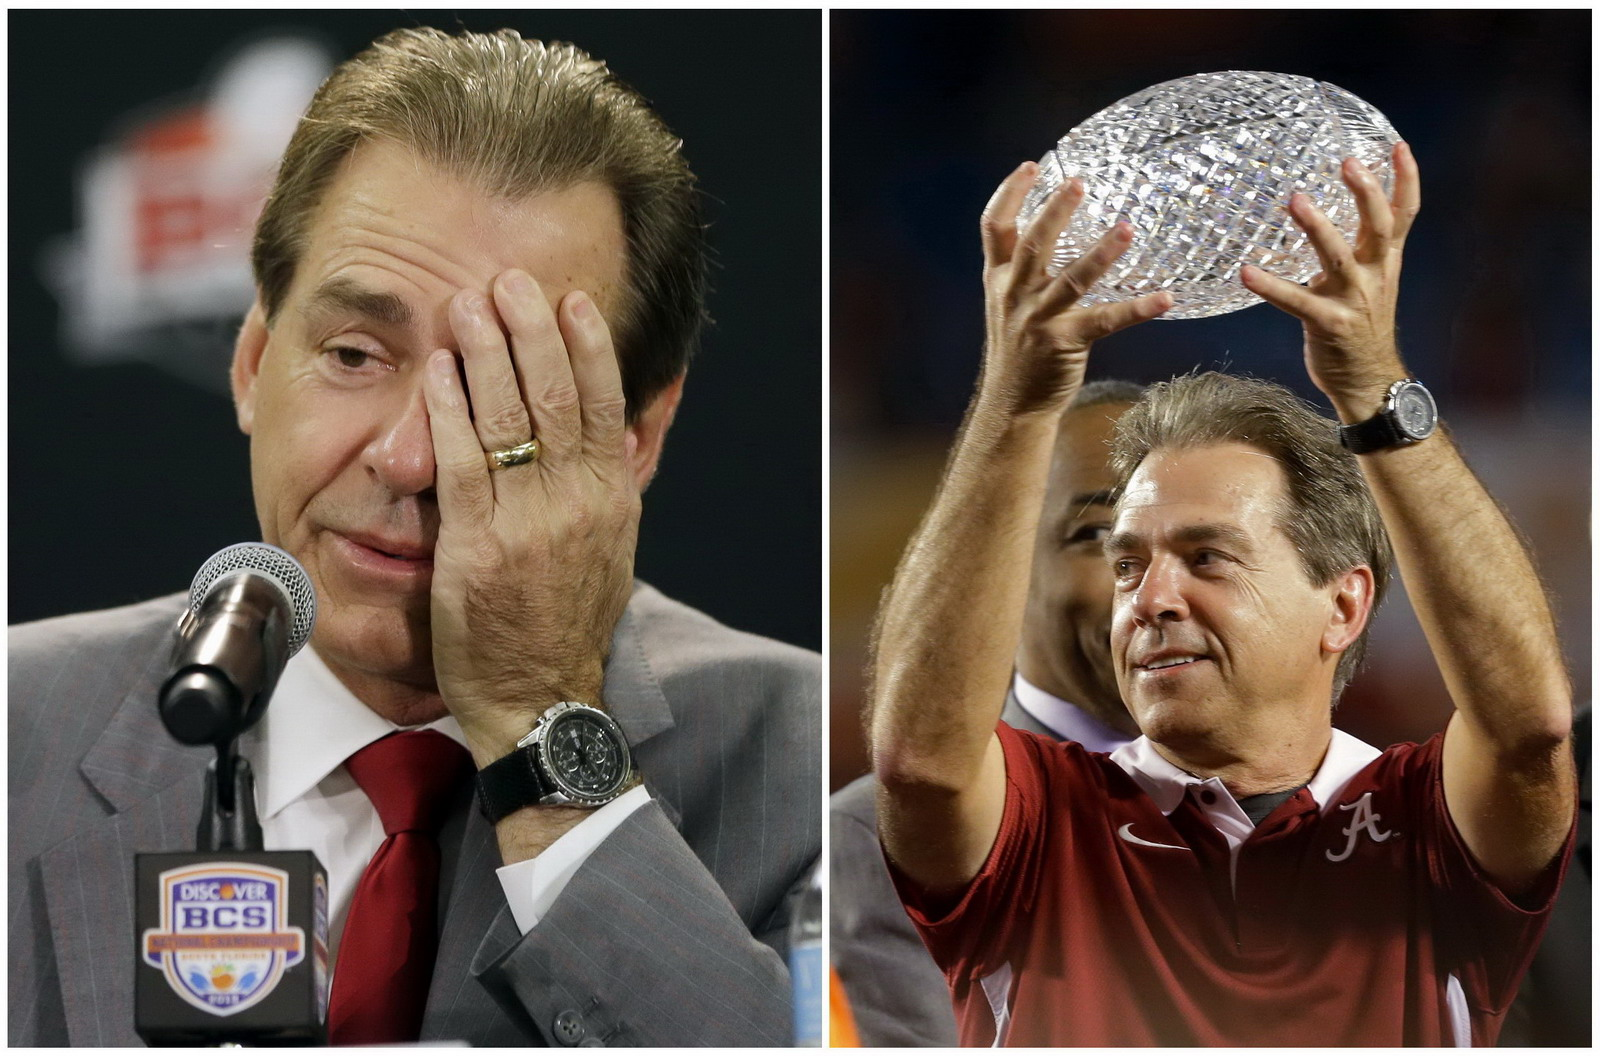 Nick Saban (Alabama) at BCS National Championship Game